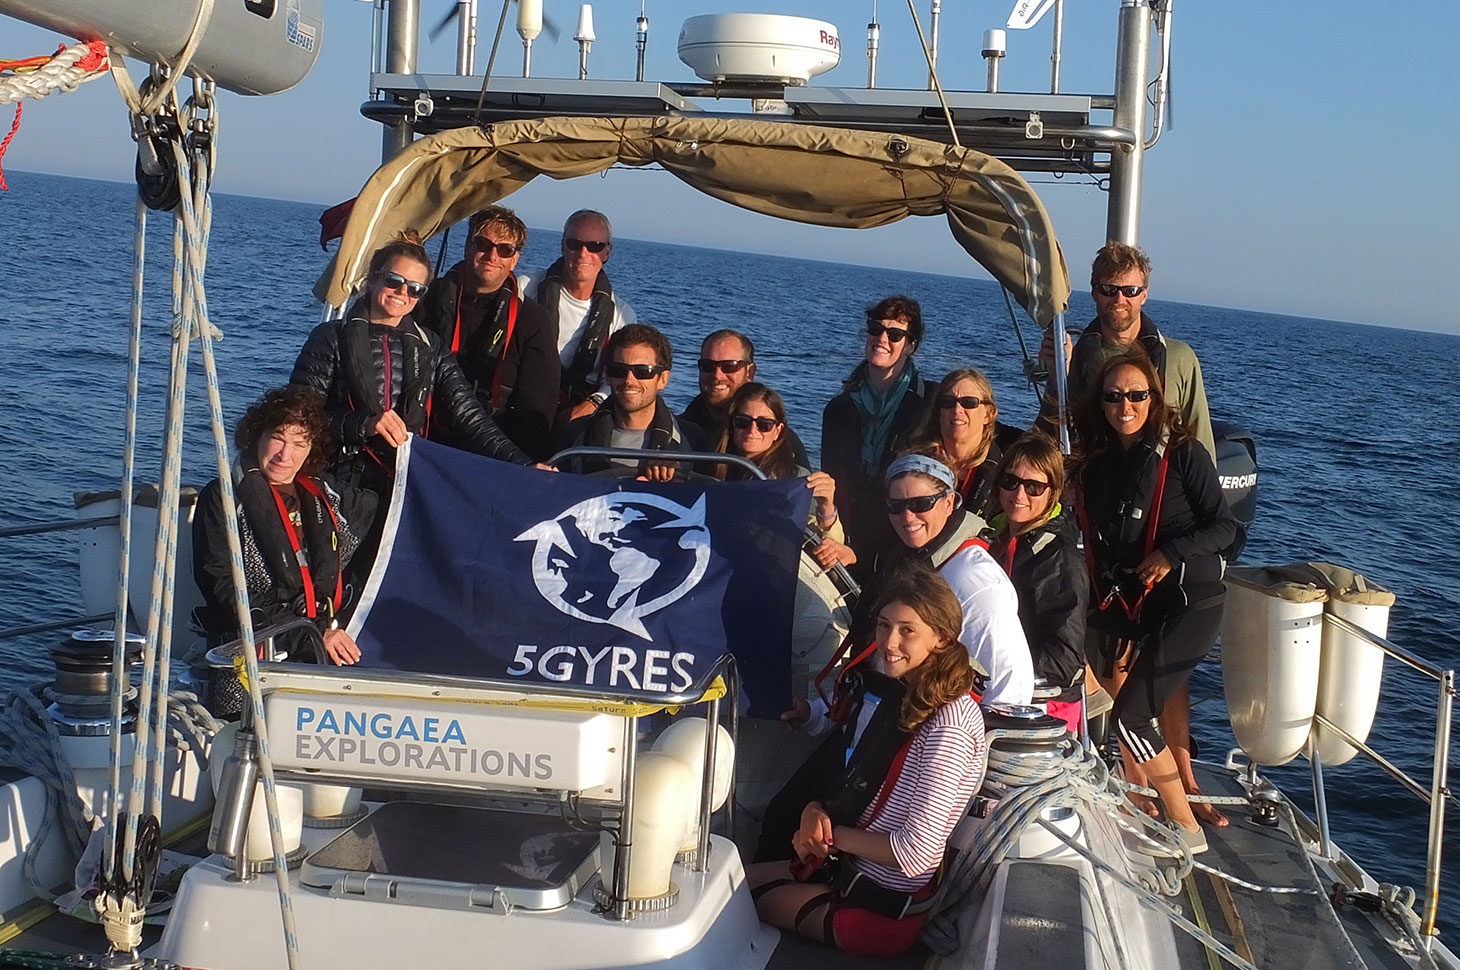 Our Partner: The 5 Gyres Institute